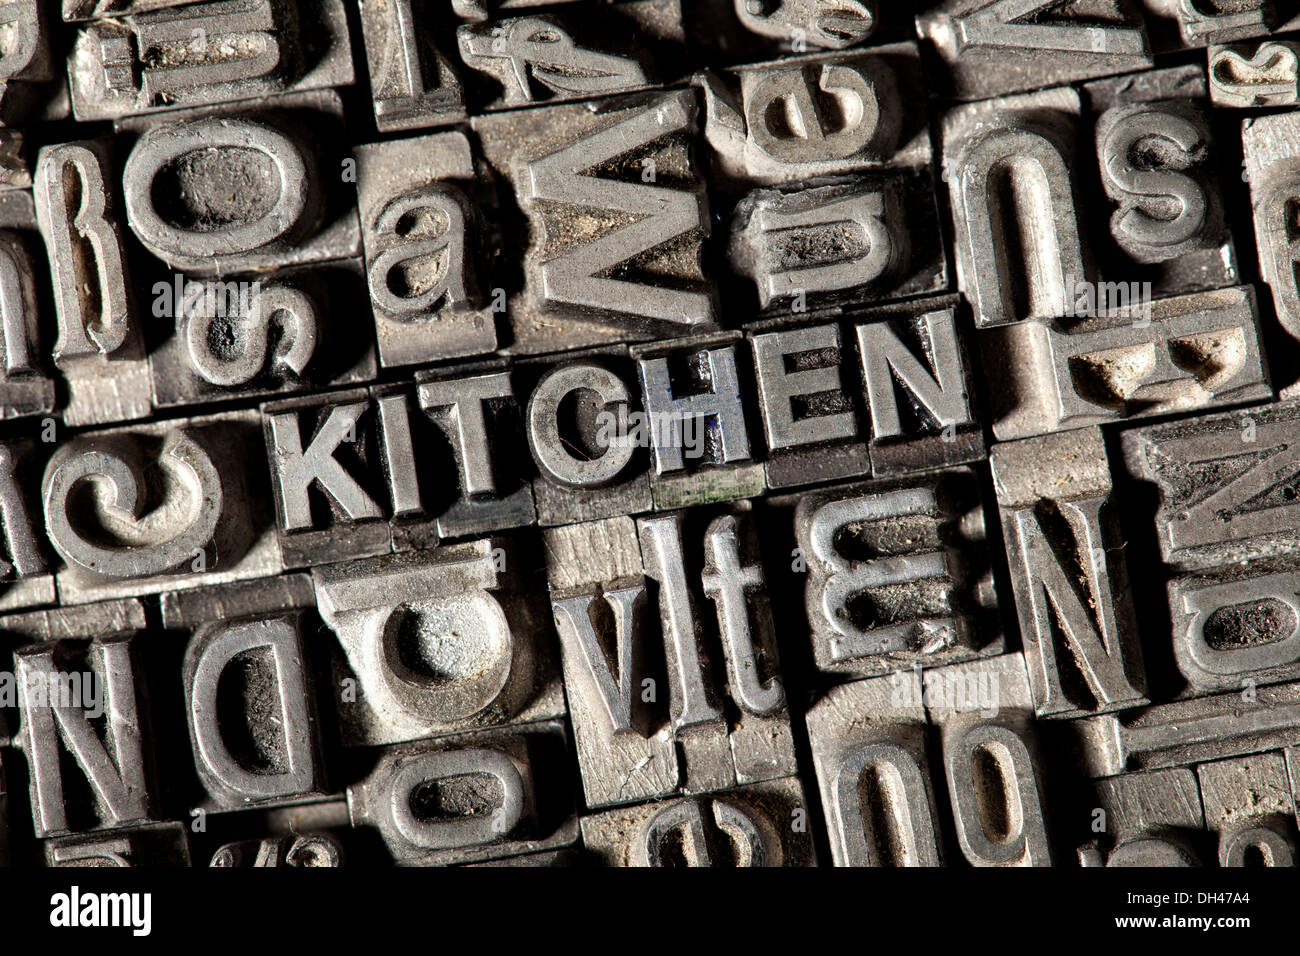 Old lead letters forming the word u0026quotKITCHENu0026quot